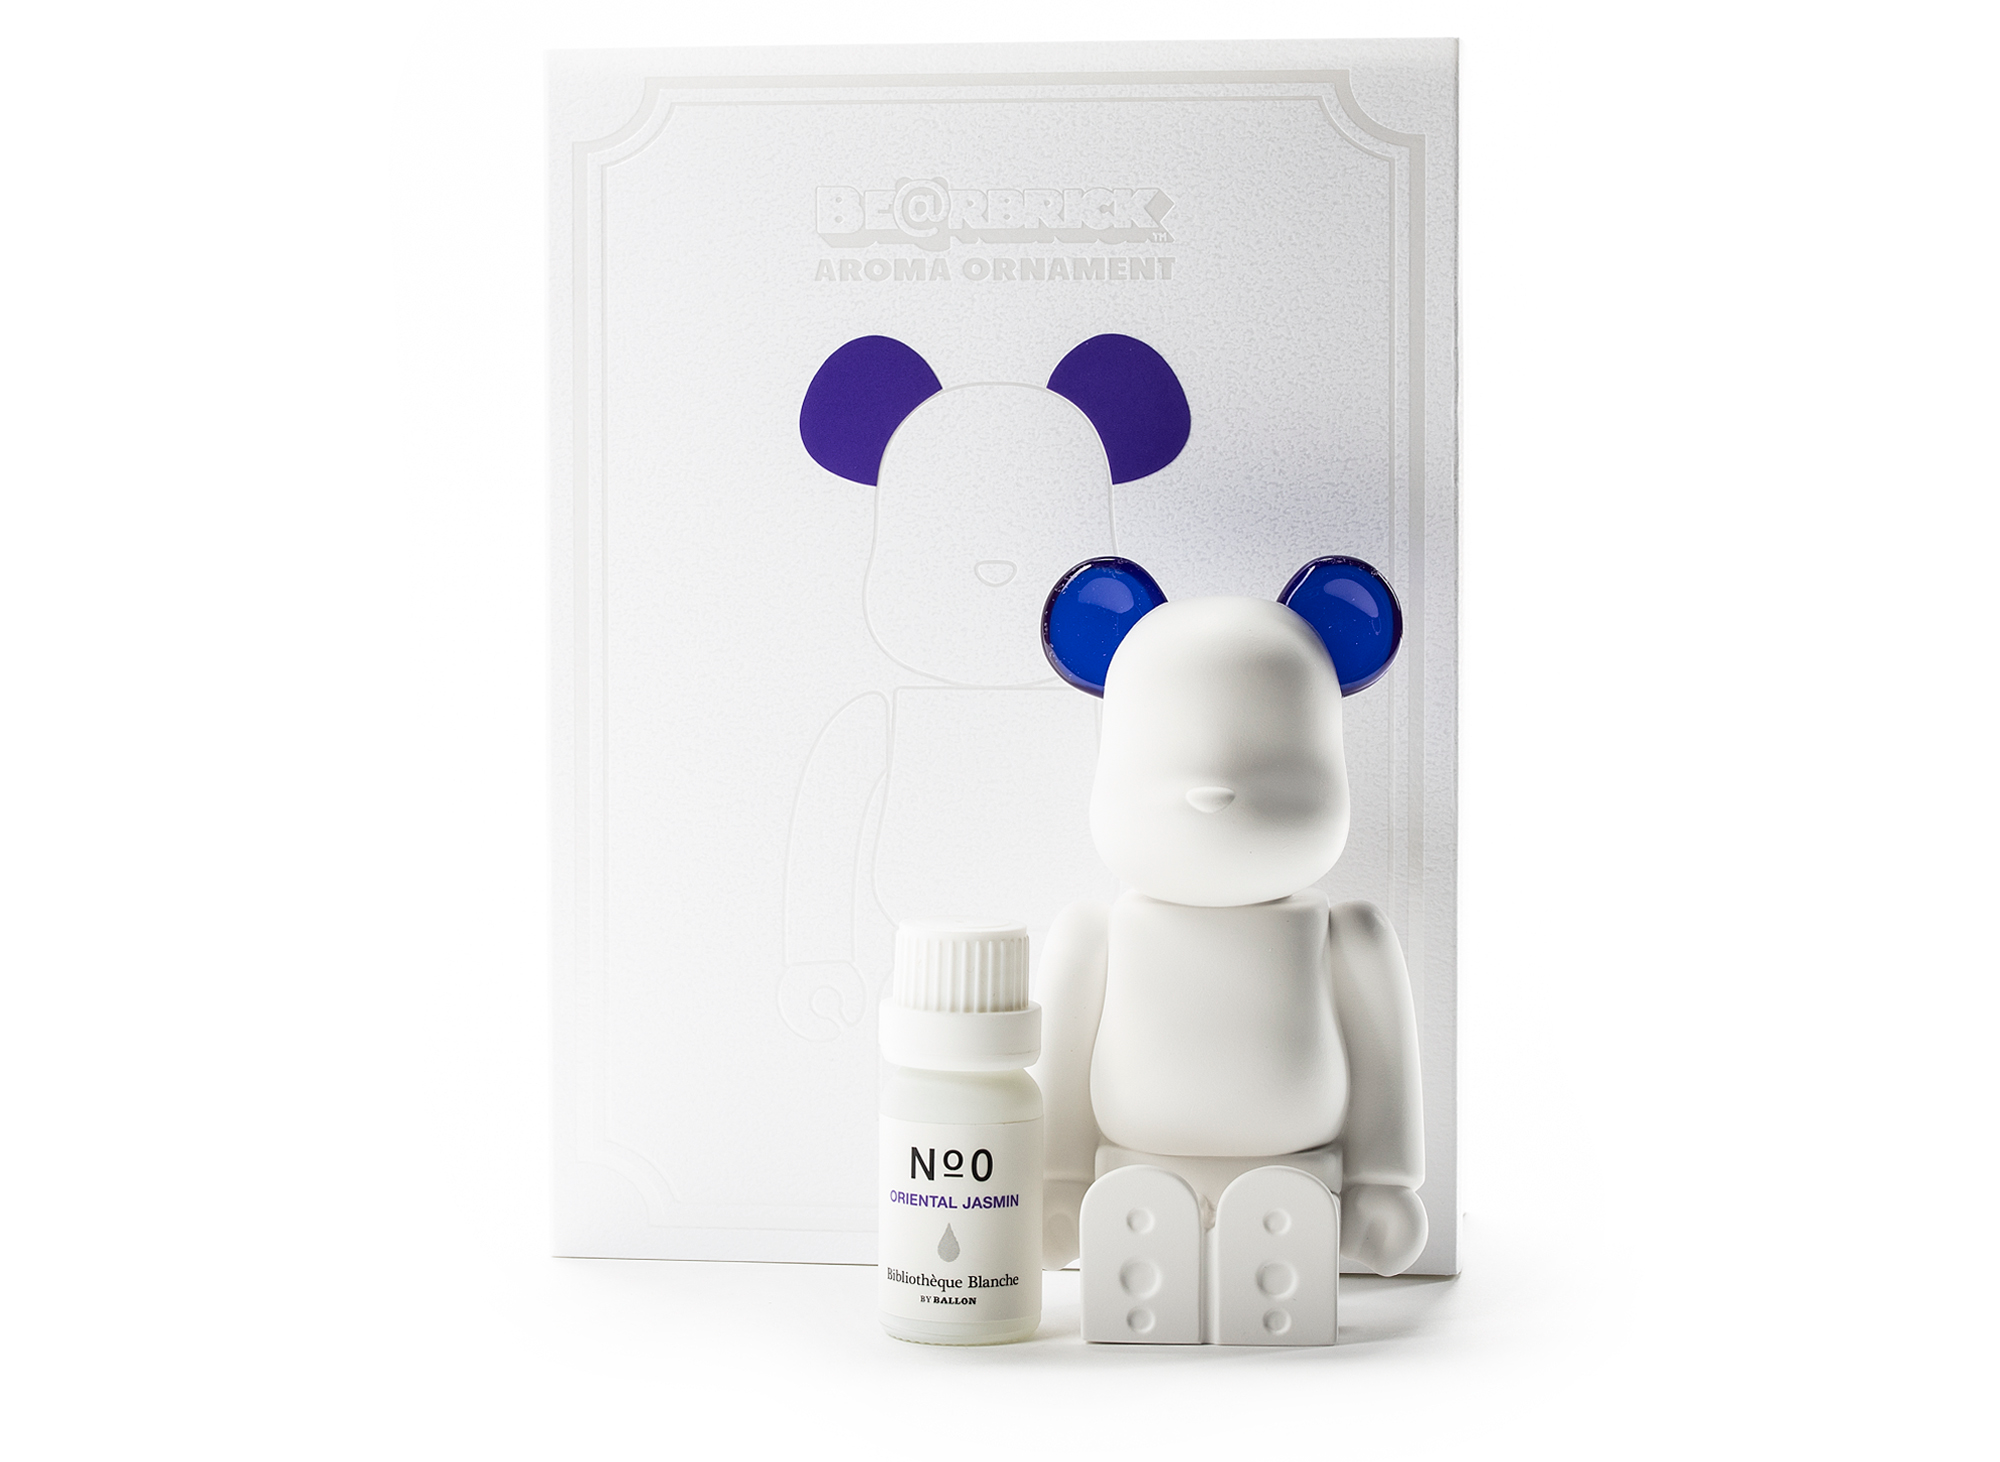 Ballon x Medicom Toy Bearbrick Aroma Ornament No.0 - Purple